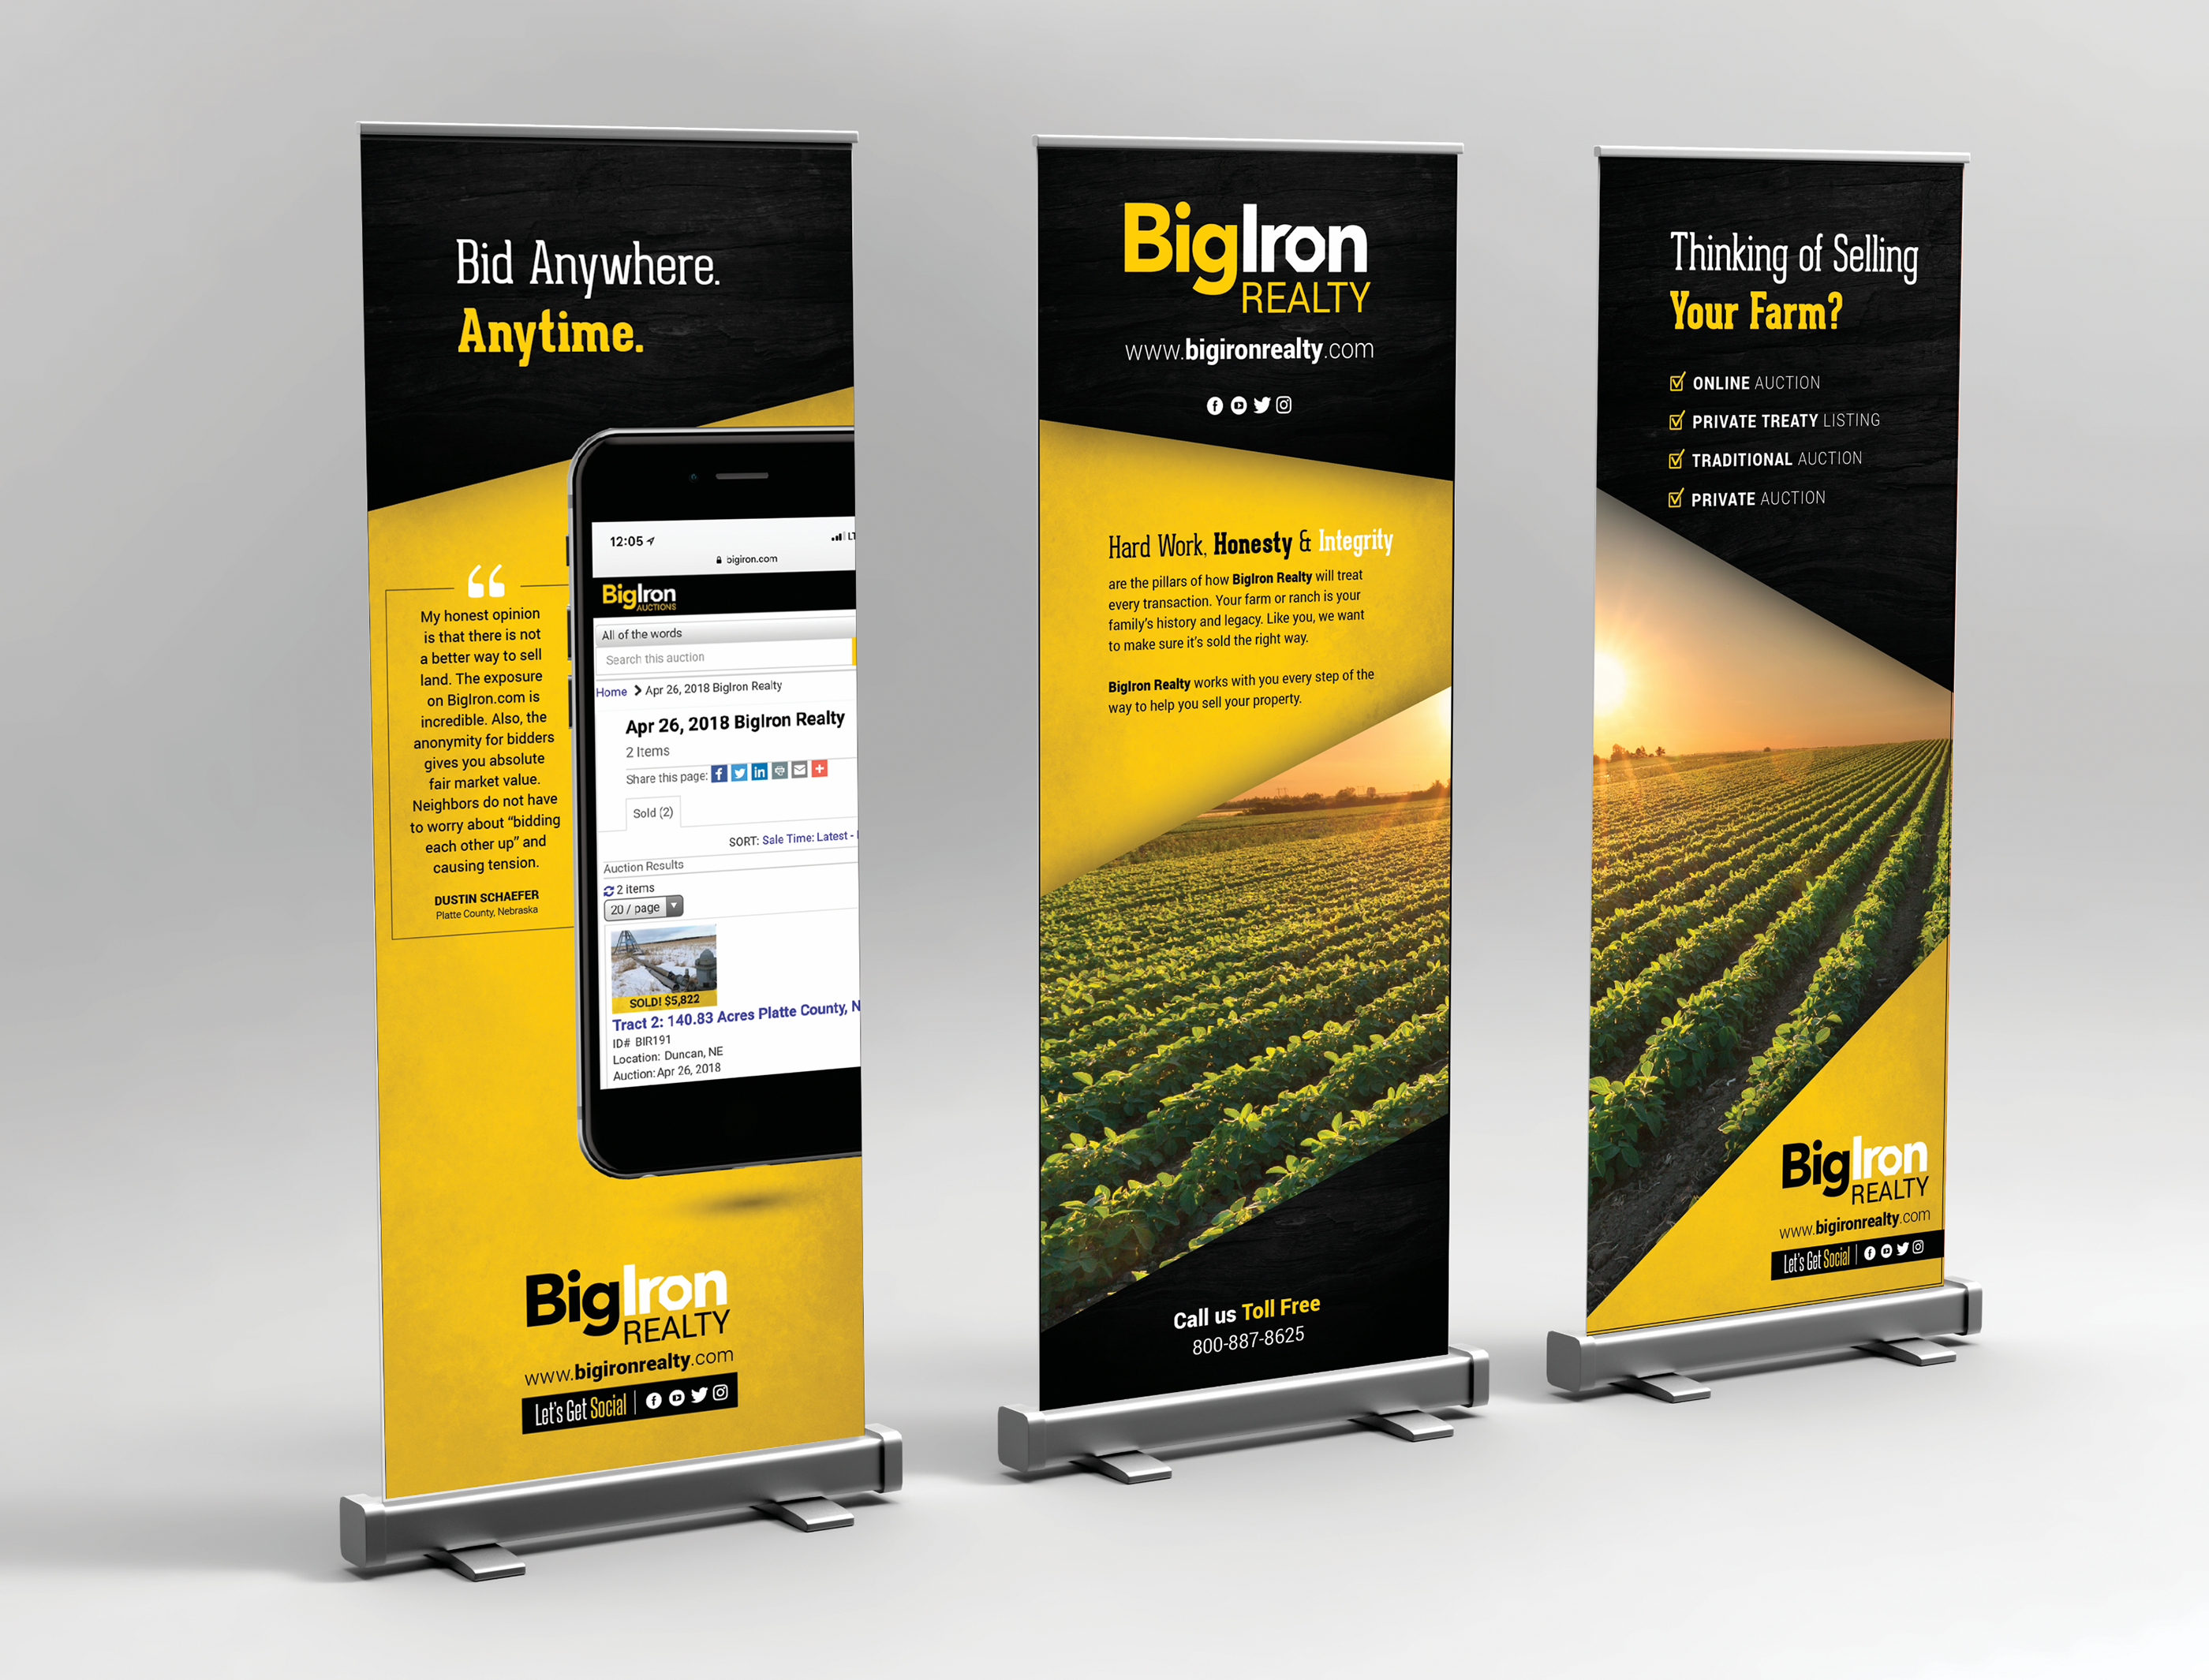 Retractable Banners _BigIron Realty on Behance